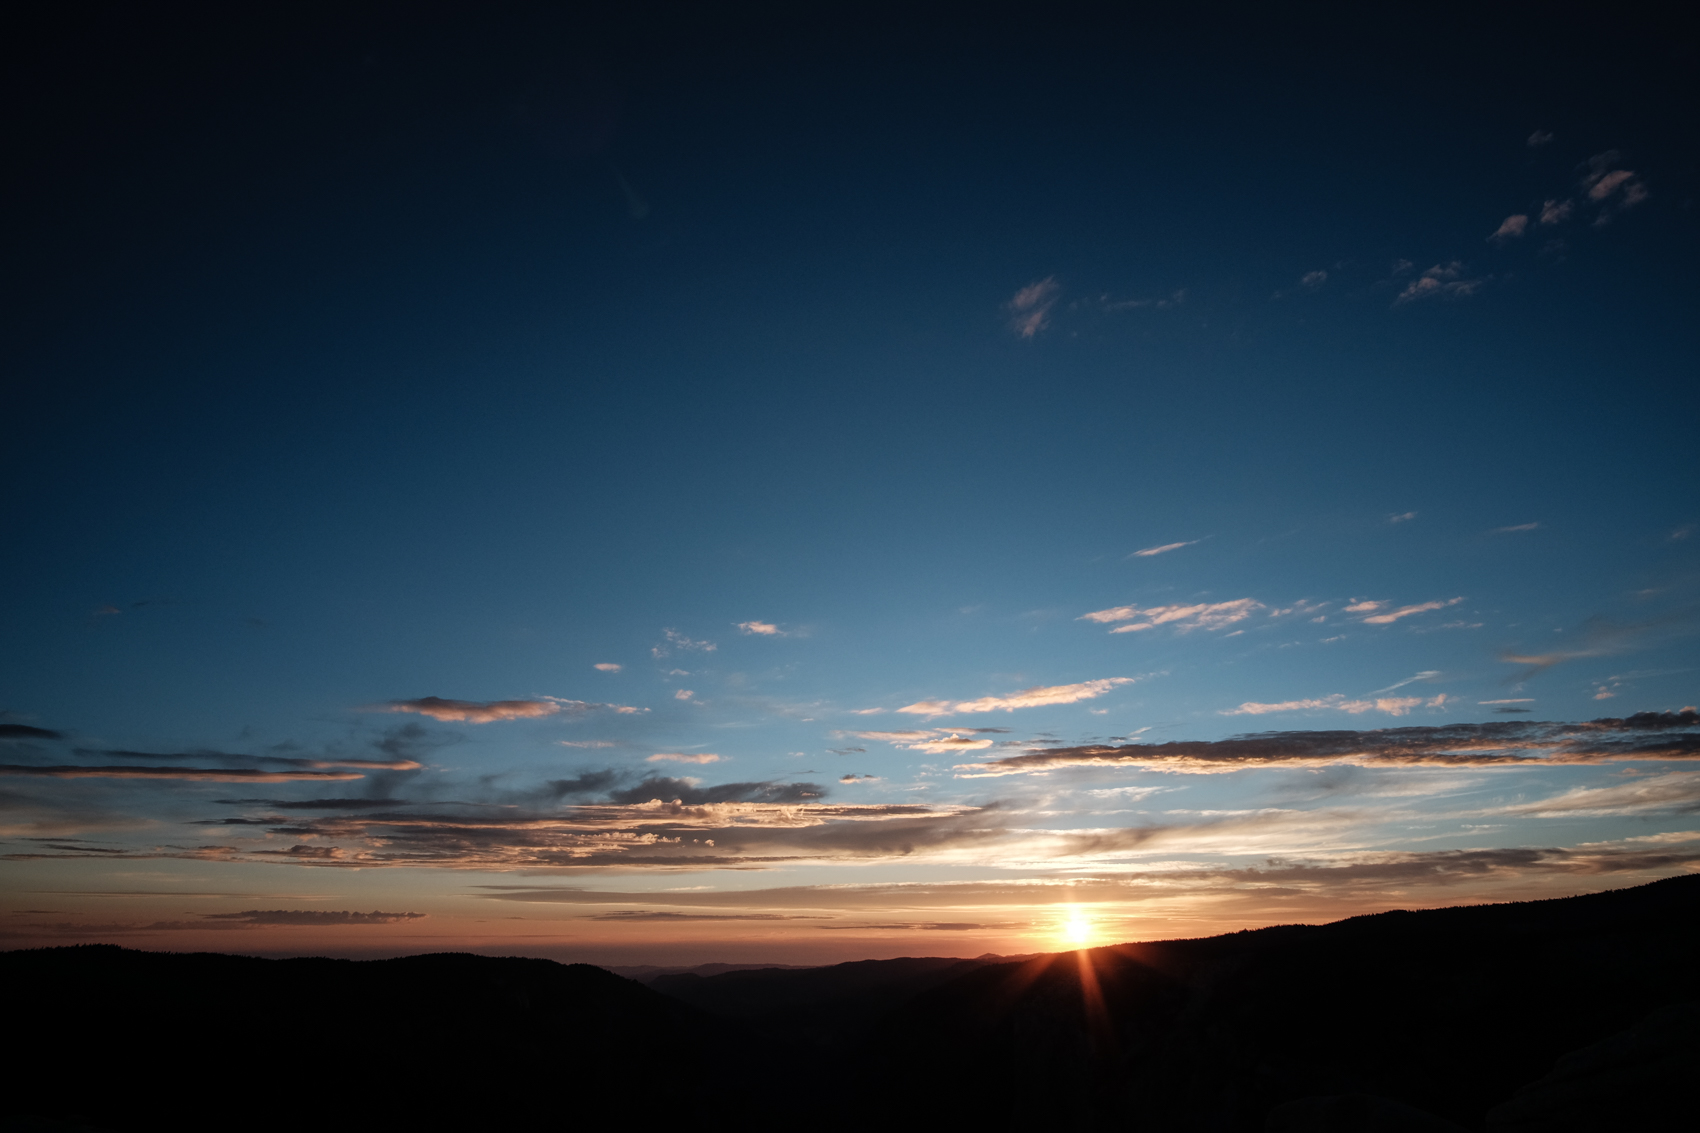 Sunset in Yosemite National Park, California. August 2015.